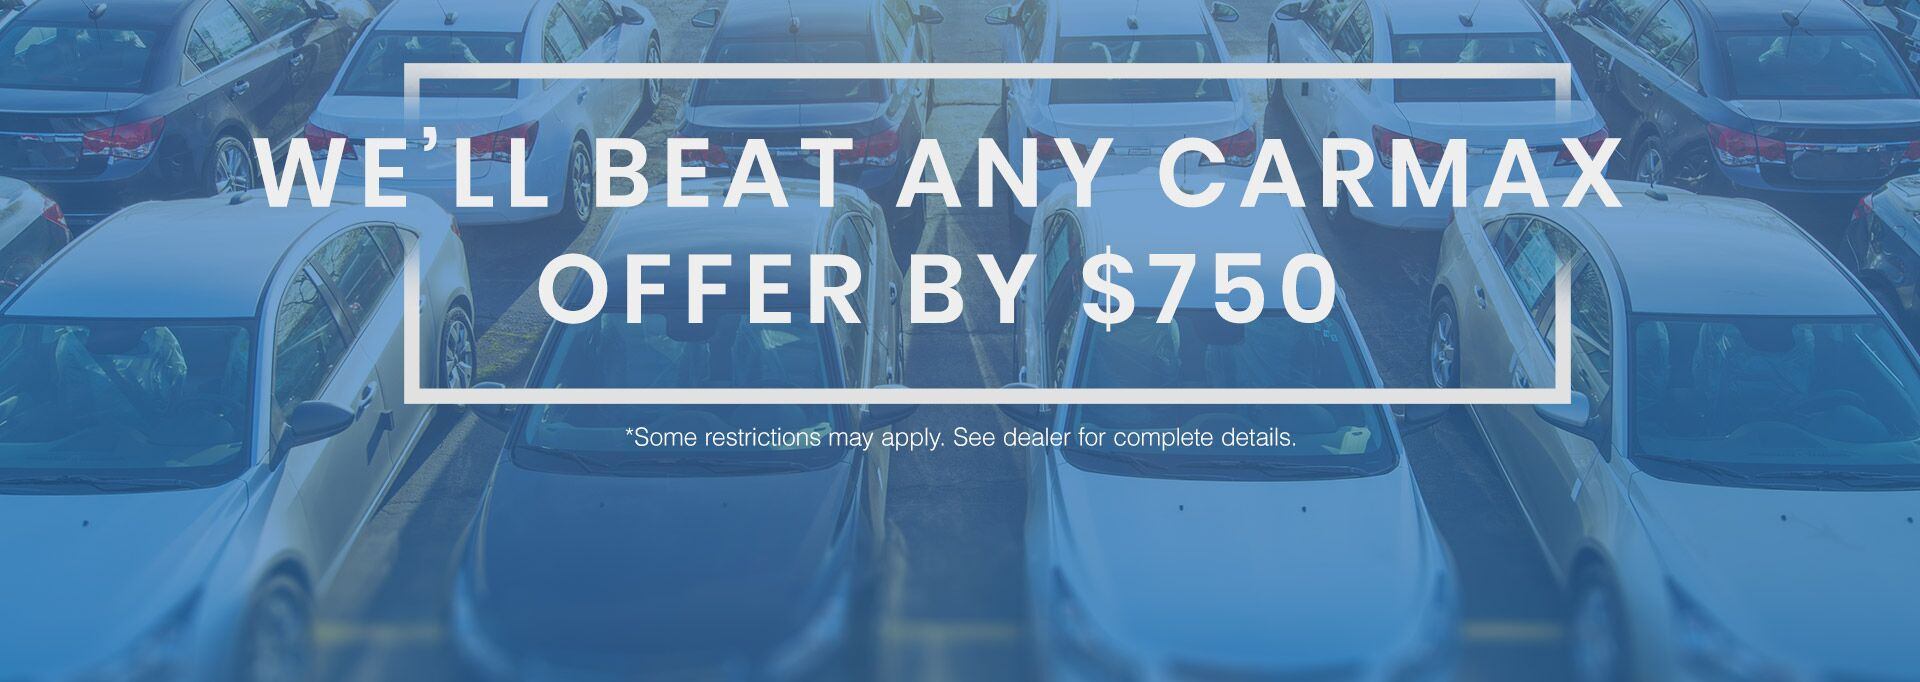 Third Coast Auto Group beats any CarMax offer by $750